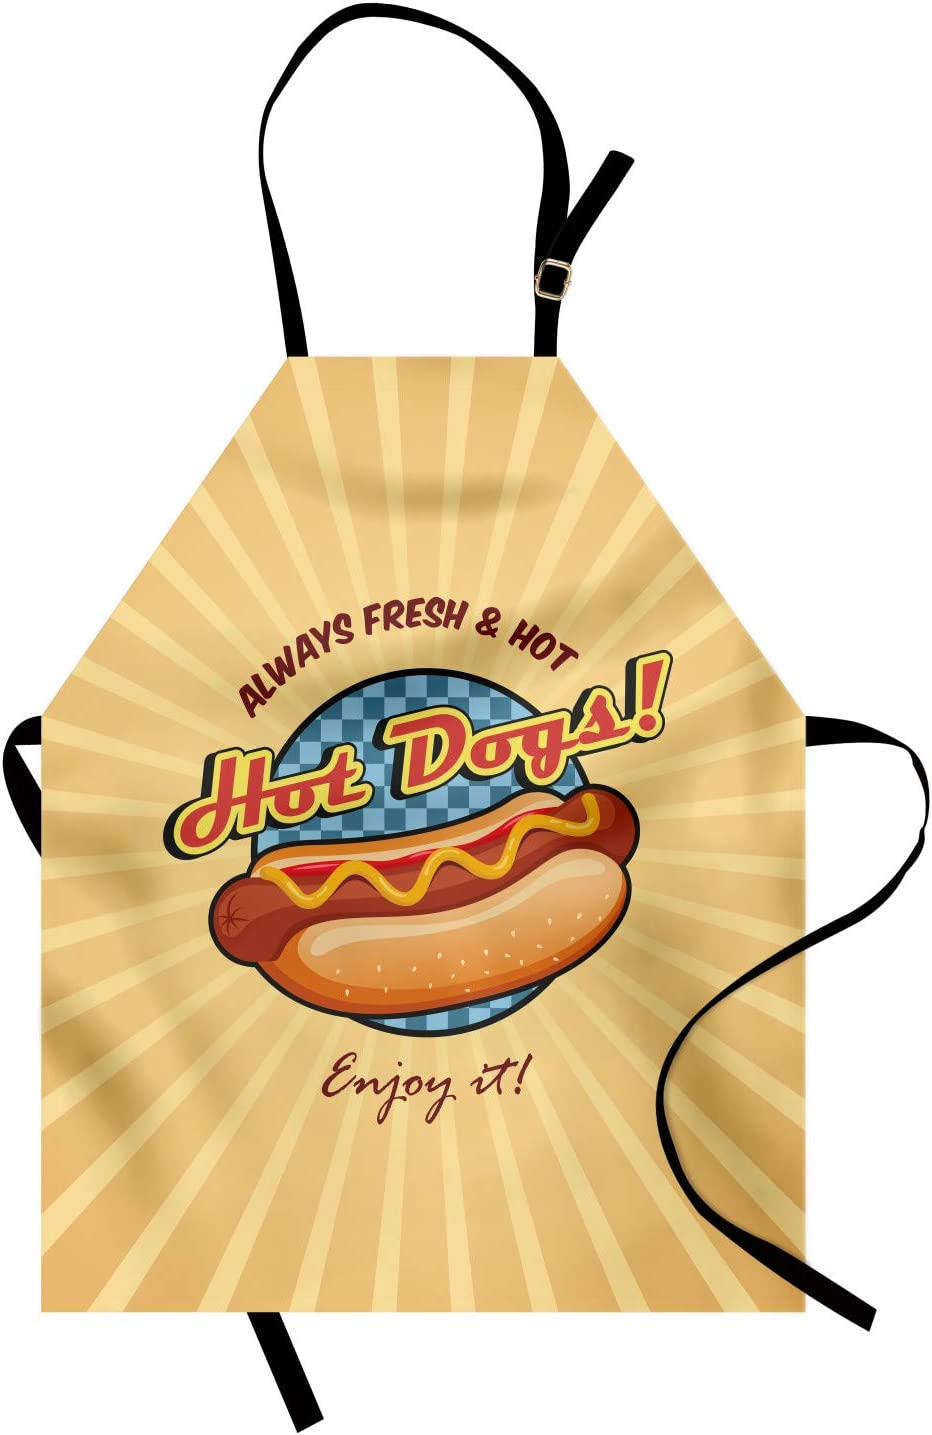 Ambesonne Snack Apron, Cartoon Design for Hot Dog Fast Food Stands Carts Sandwich, Unisex Kitchen Bib with Adjustable Neck for Cooking Gardening, Adult Size, Pastel Brown